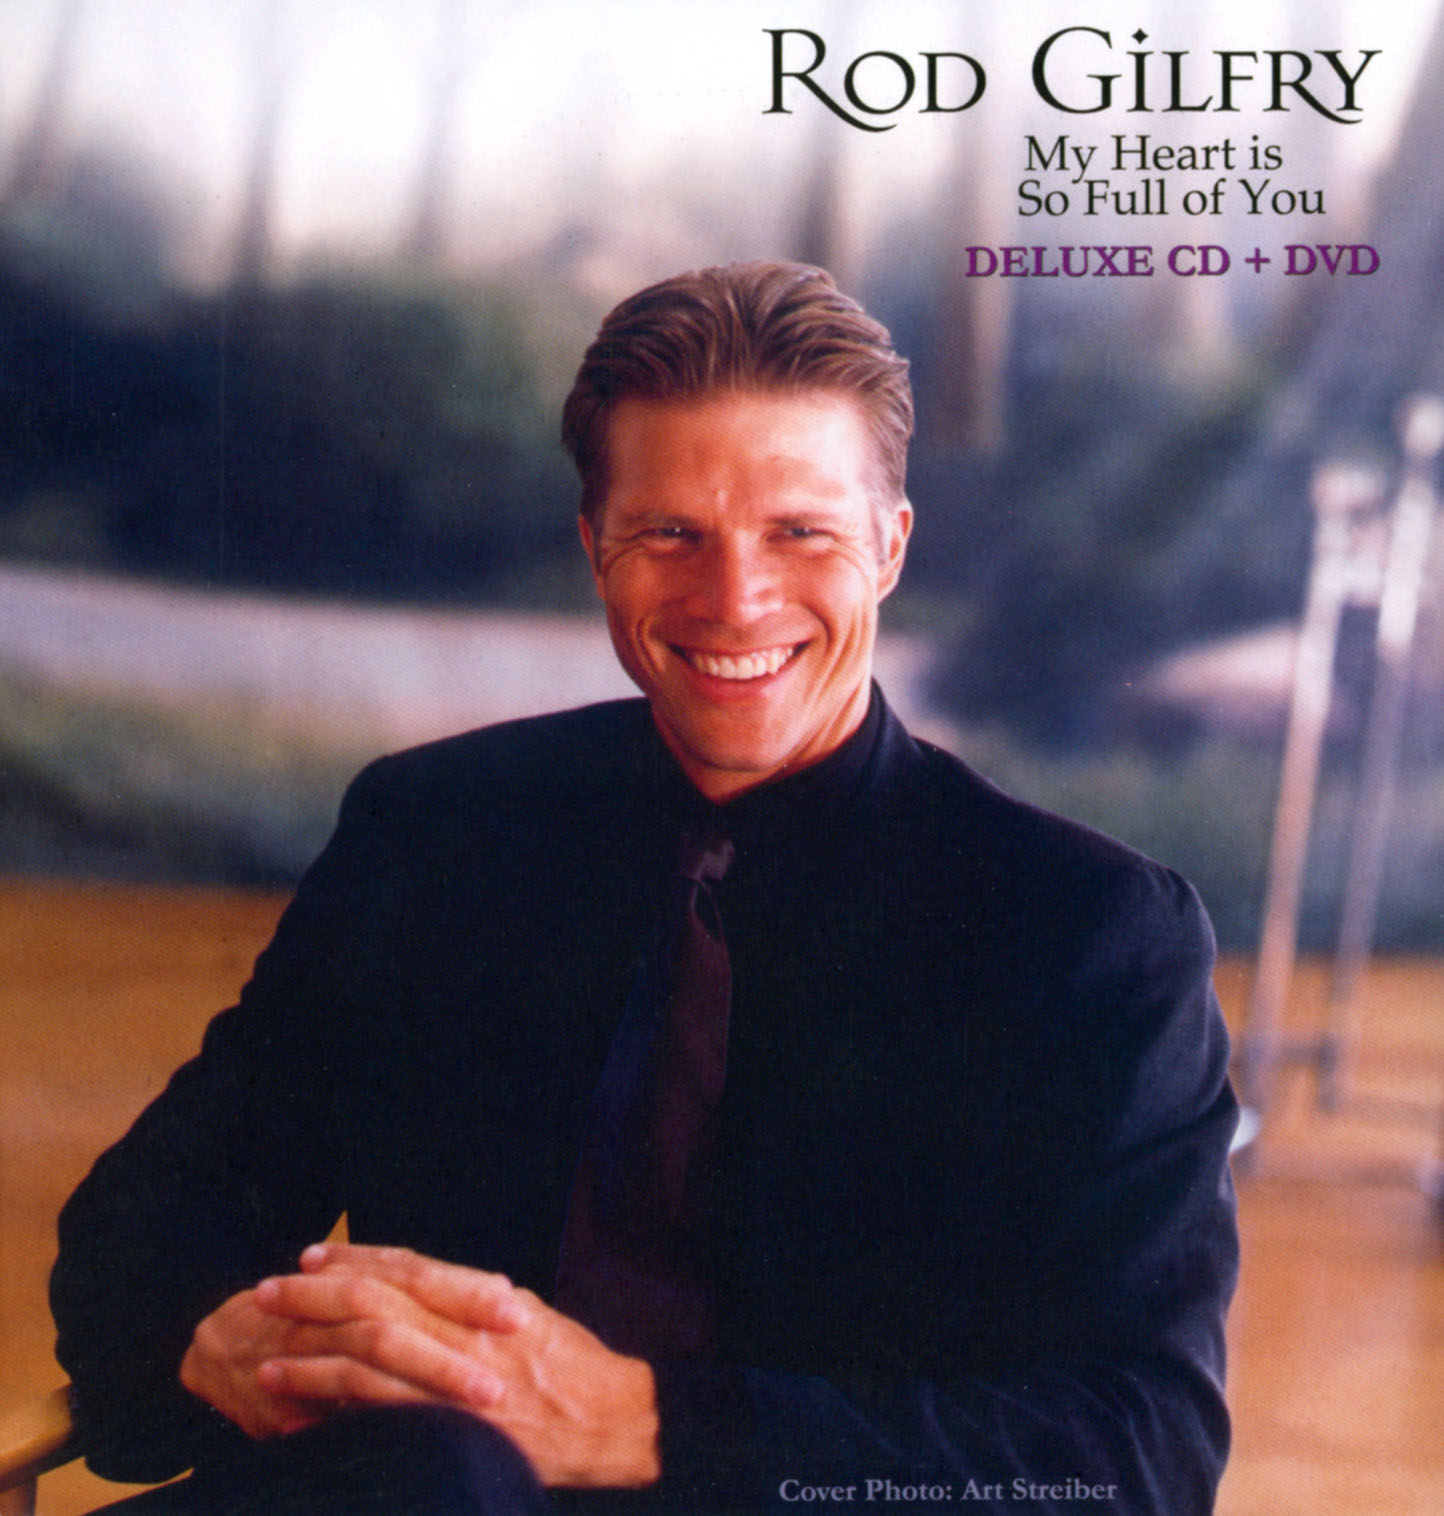 Rod Gilfry: My Heart is So Full of You